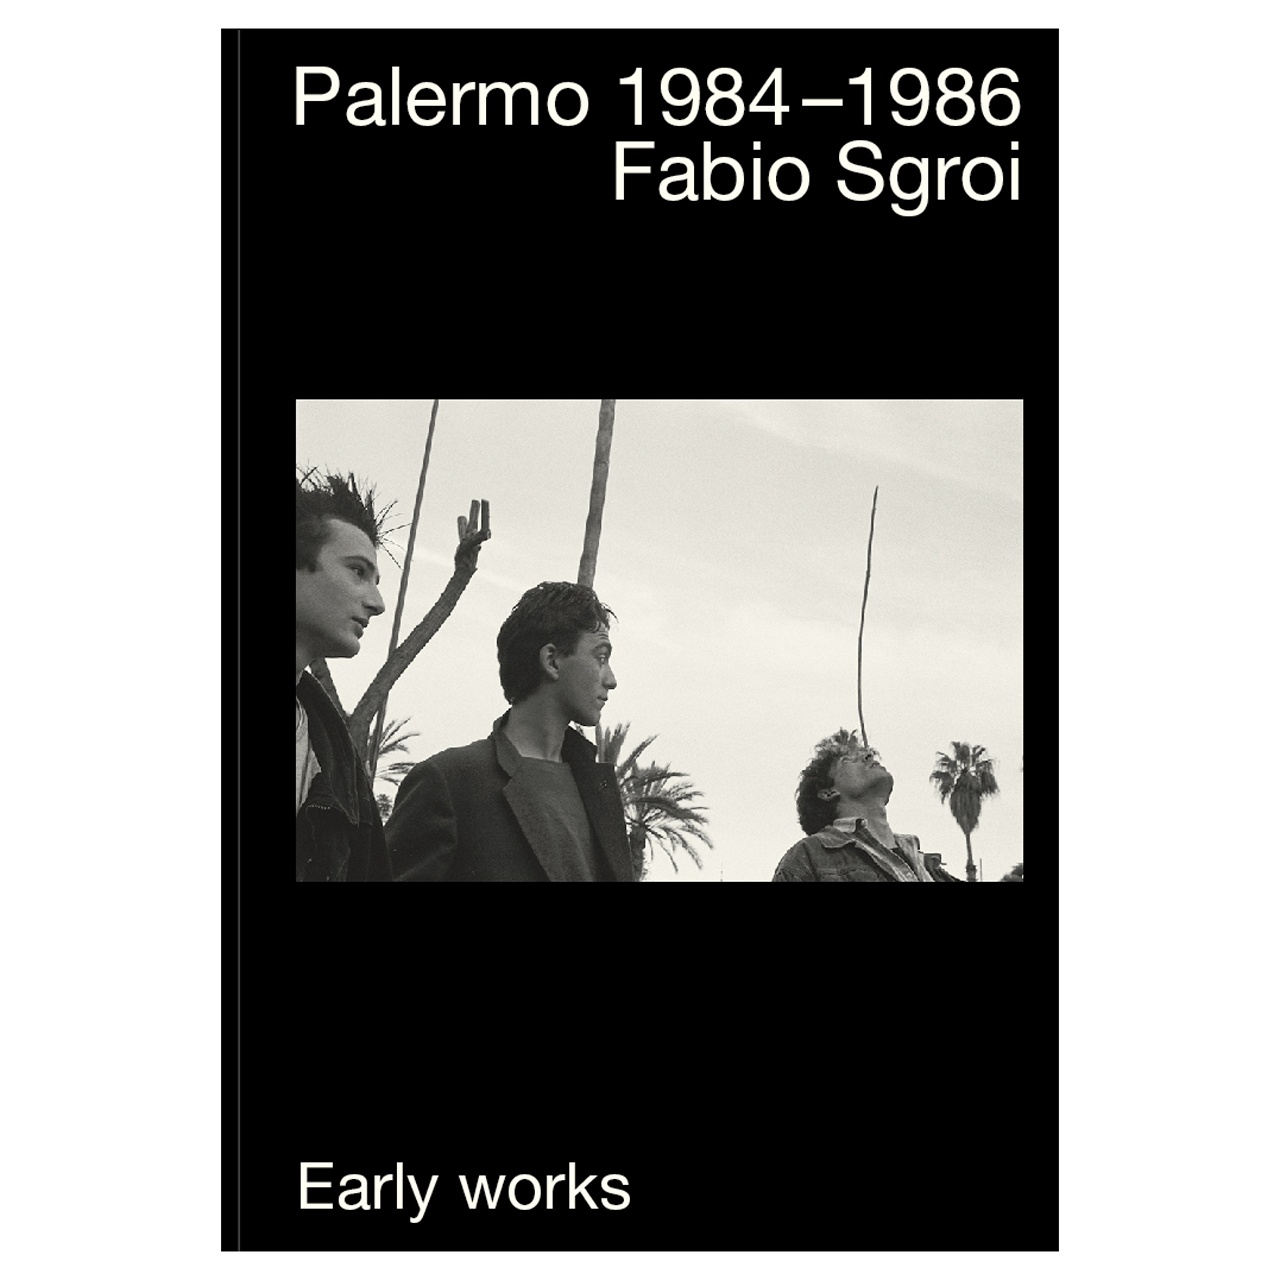 Palermo 1984 – 1986, Early works Fabio Sgroi